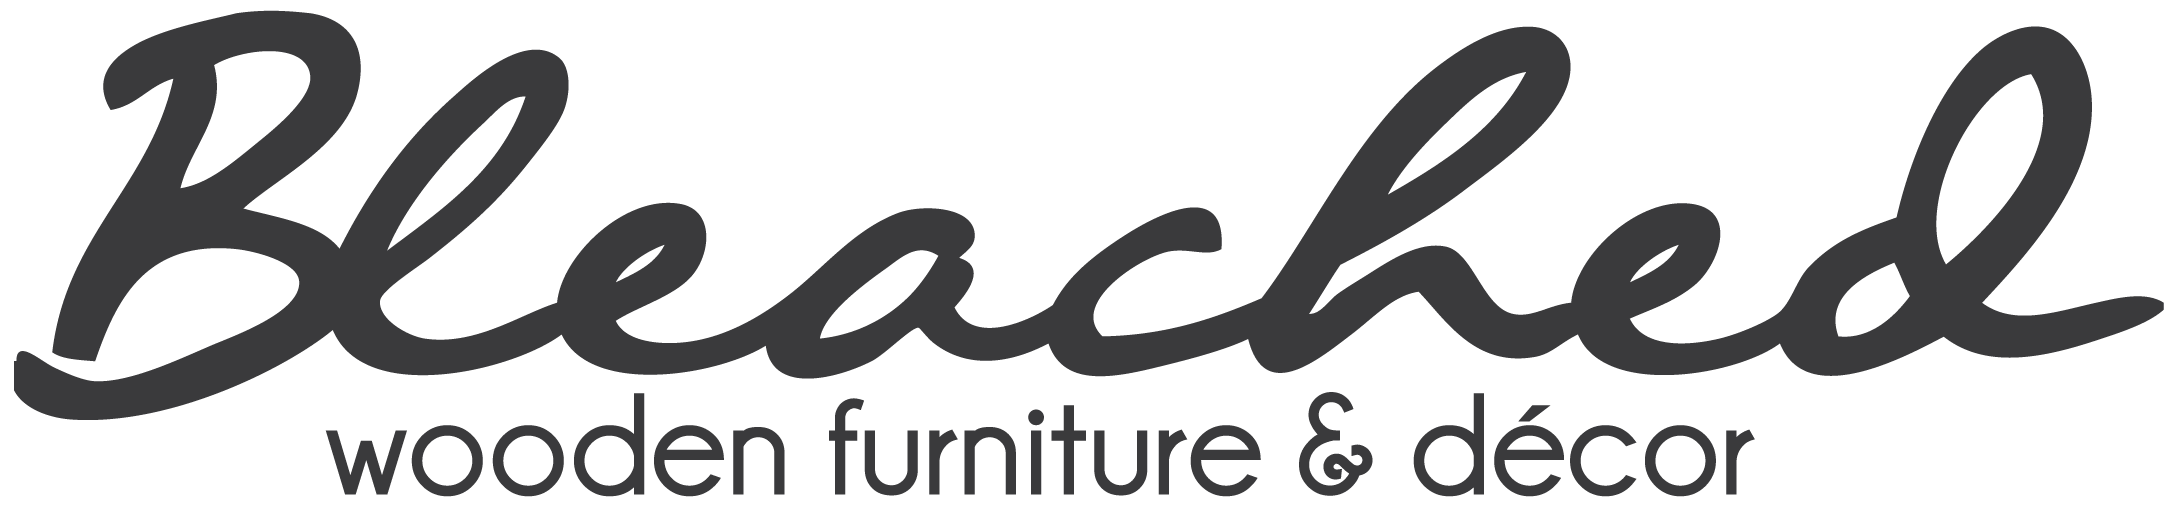 South African Wooden Furniture & Décor.